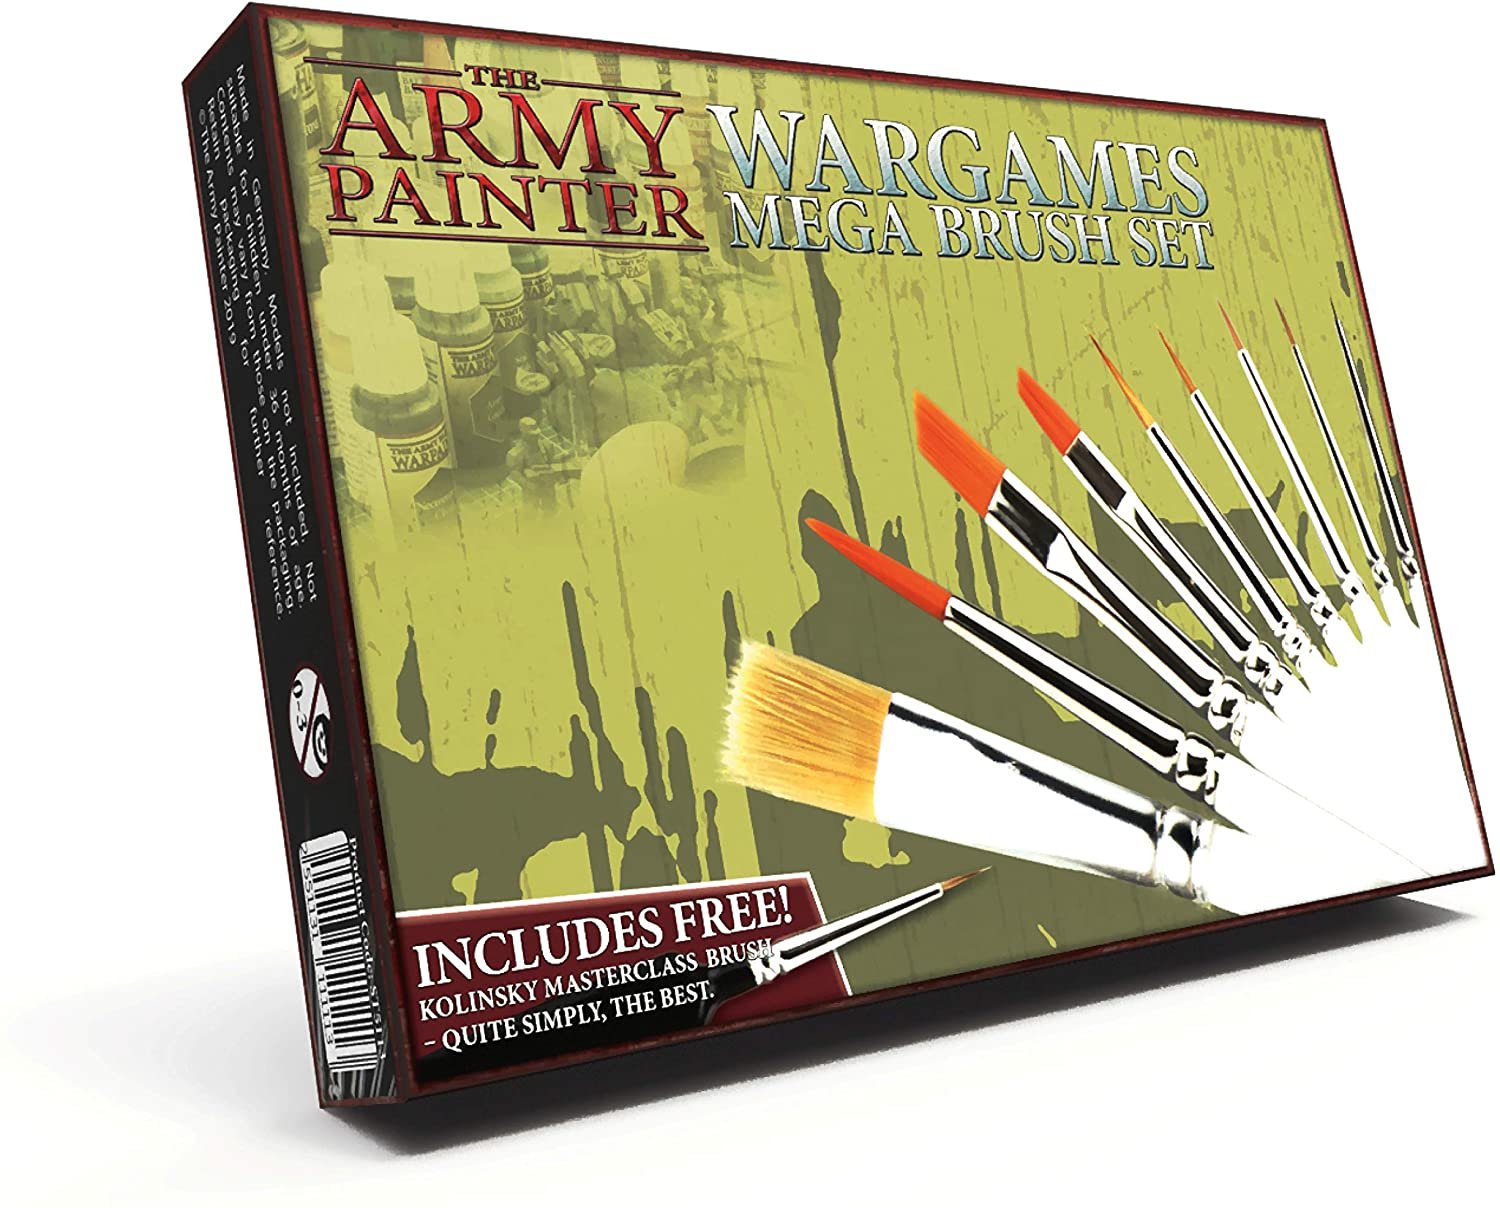 The Army Painter Wargames Mega Brush Set